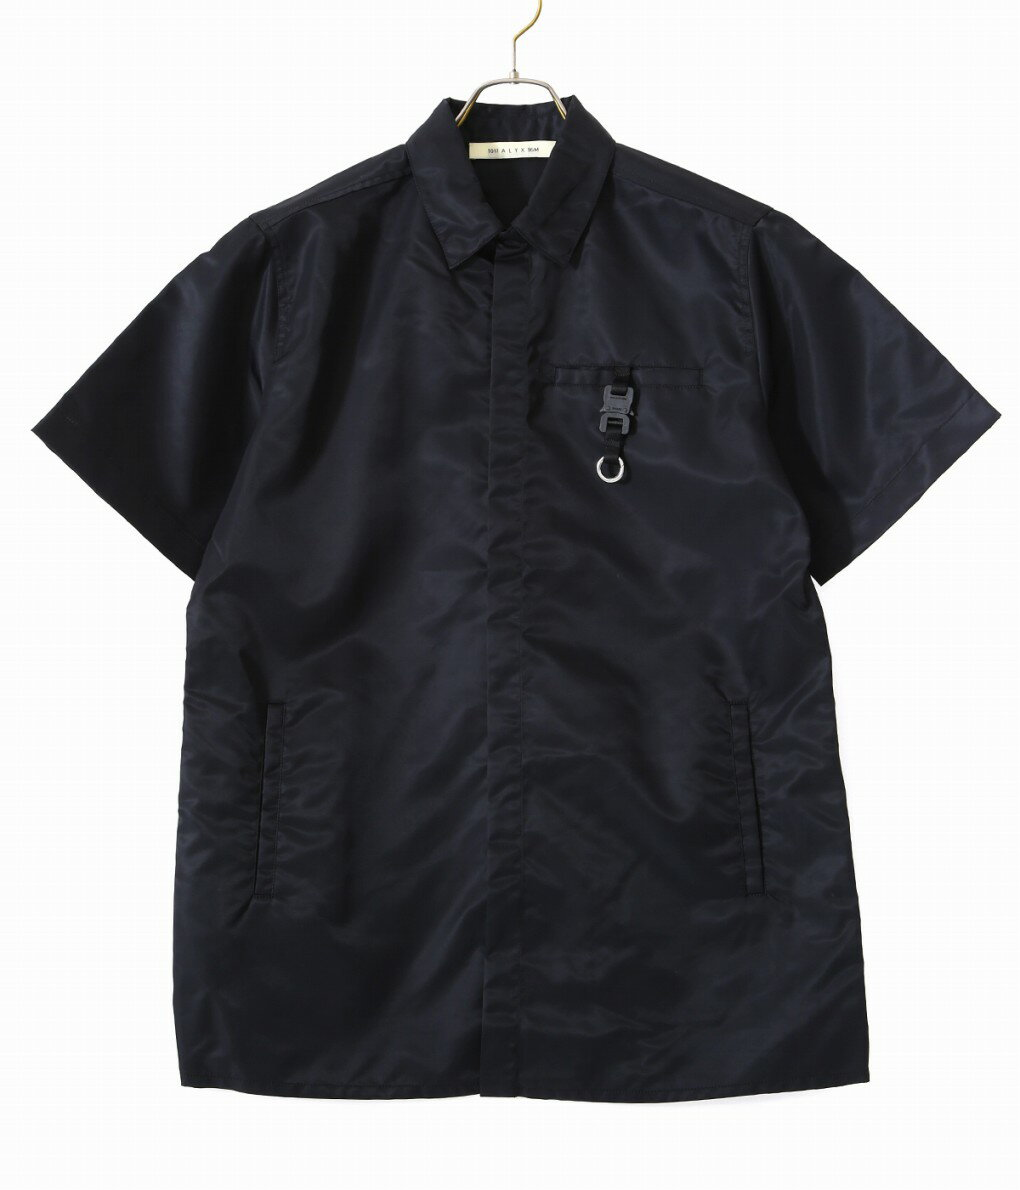 トップス, カジュアルシャツ 1017 ALYX 9SM SS BUTTON UP W BUCKLE AAMSH0025FA01 WAX